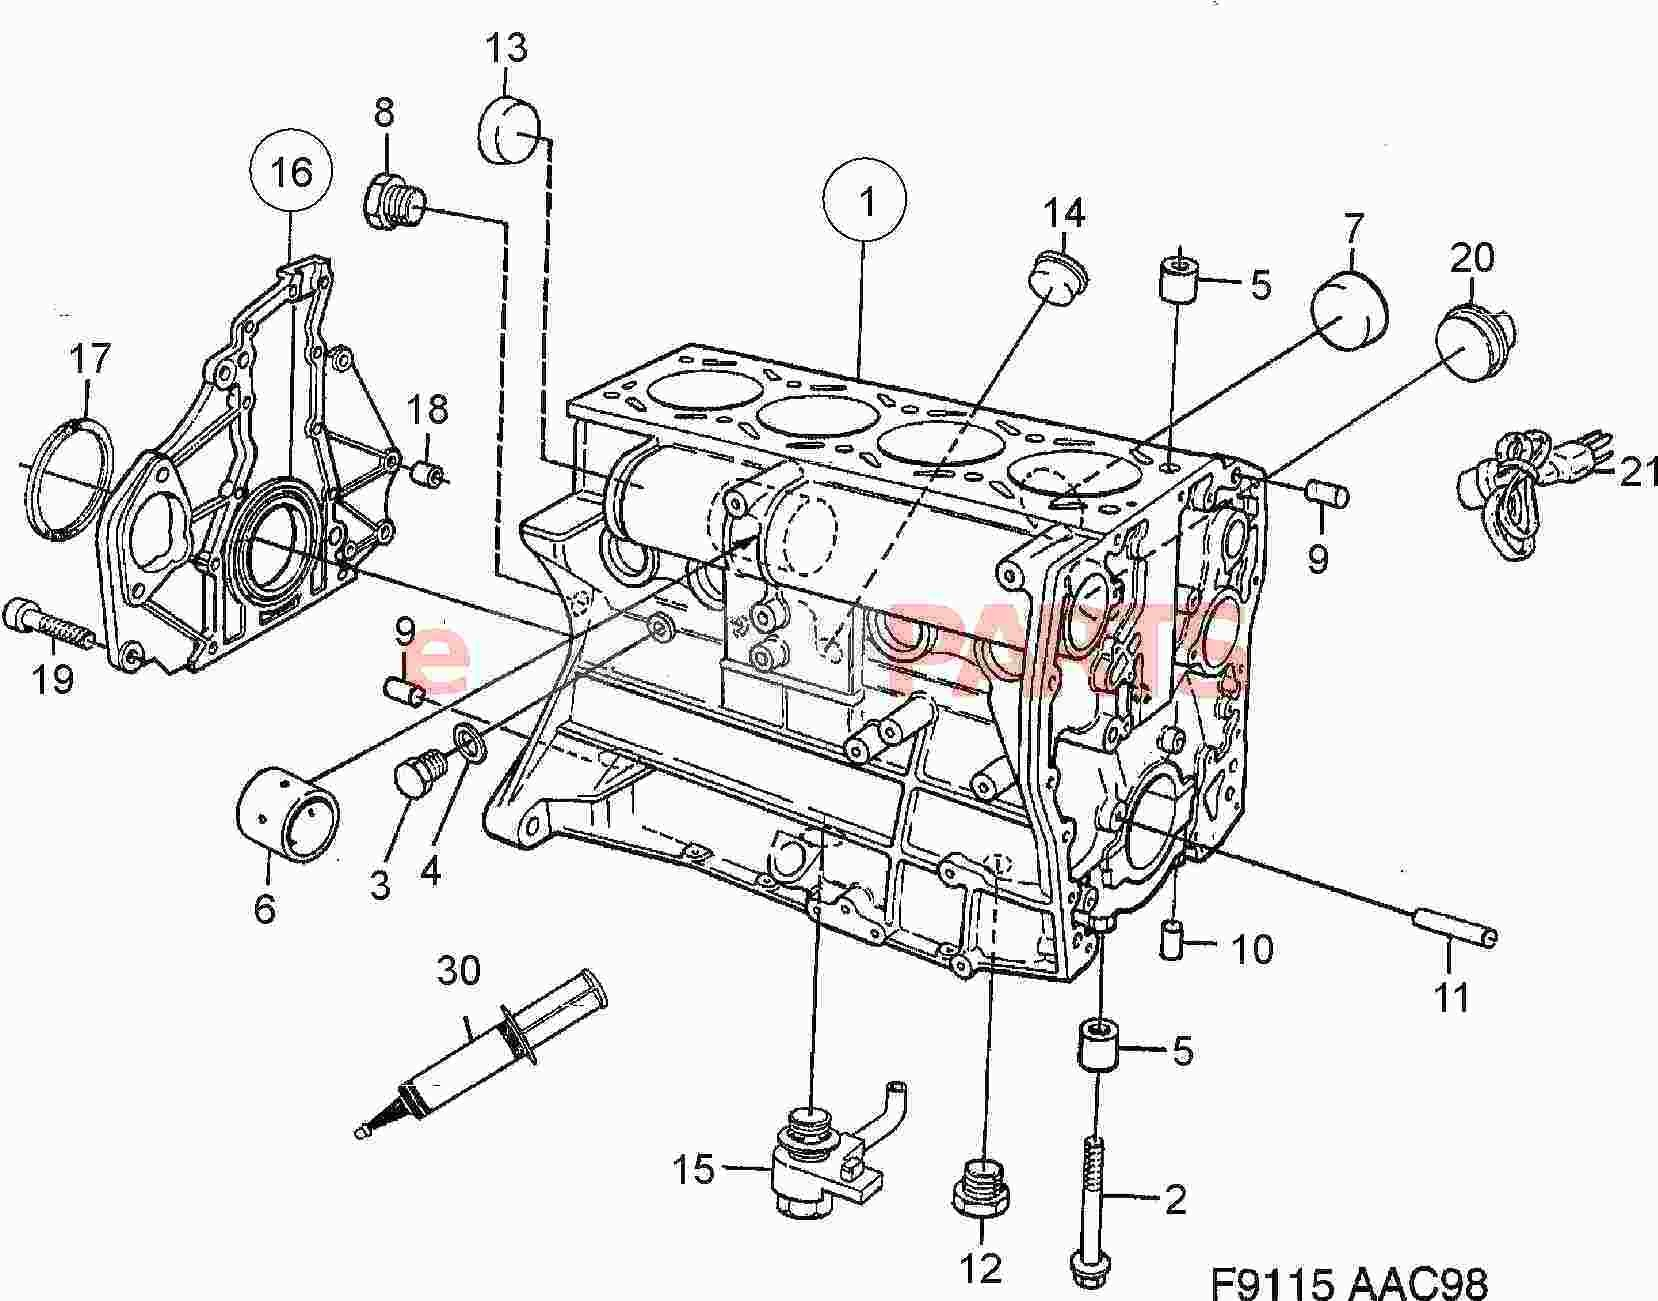 2007 Camry Engine Diagram Wiring Diagrams Post Die Fast Die Fast Michelegori It